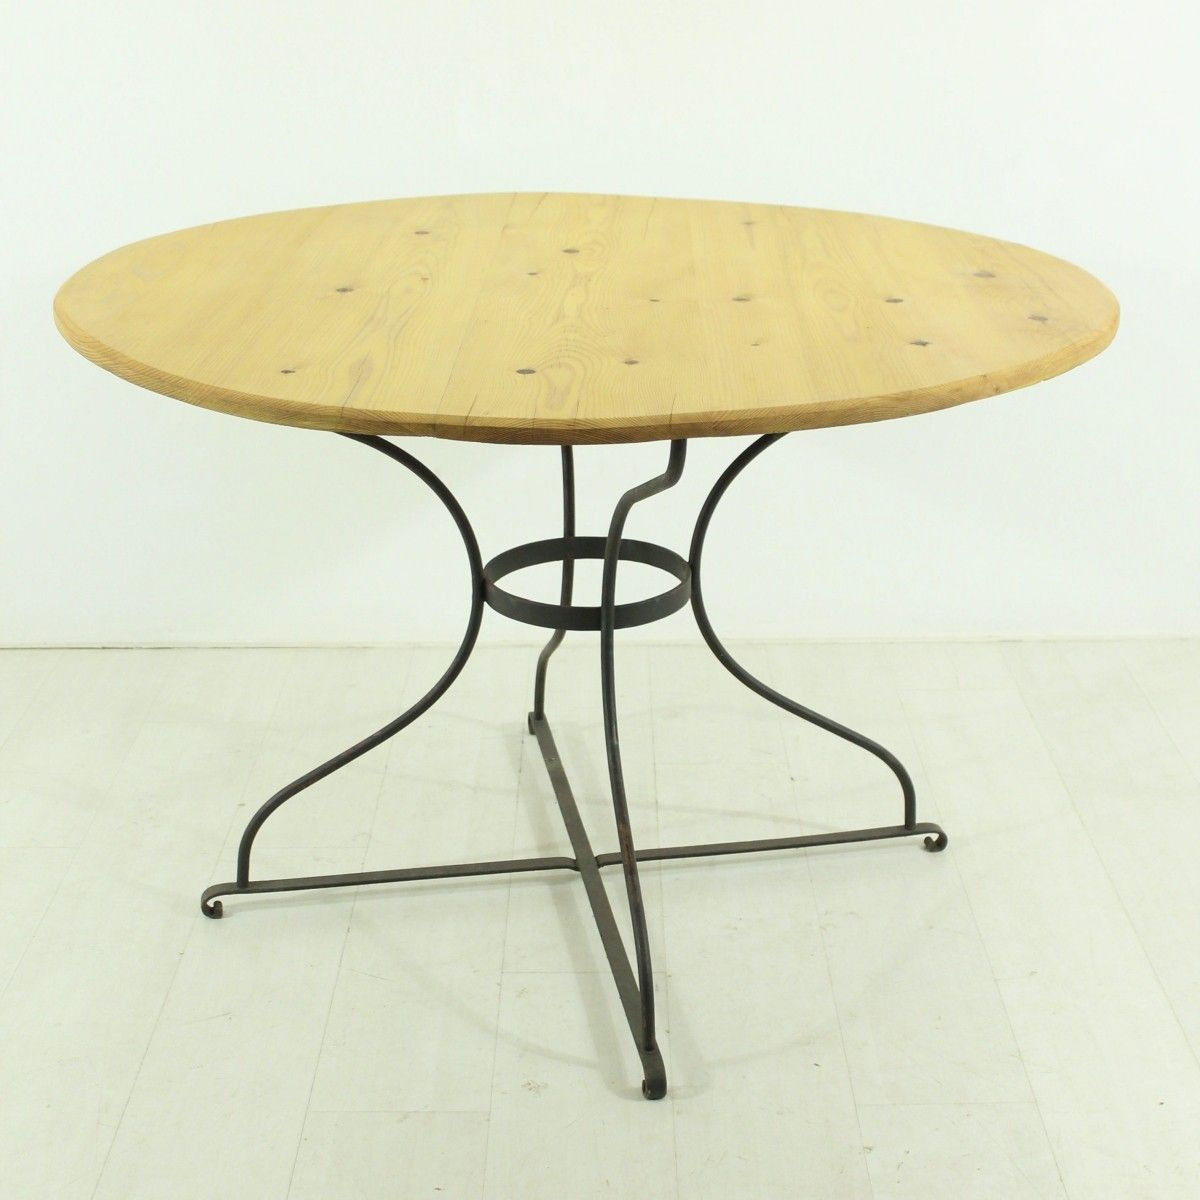 Vintage Round Dining Table with a Metal Base for sale at